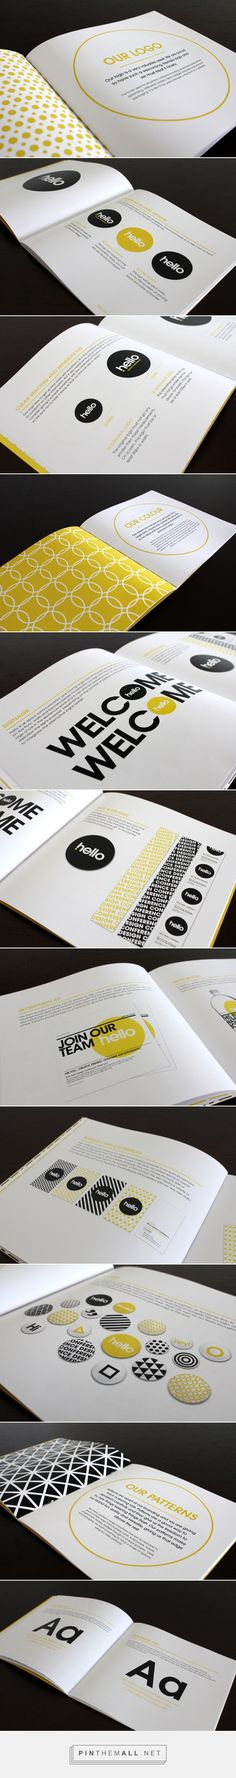 Hello Design Conference Brand Standards Manual